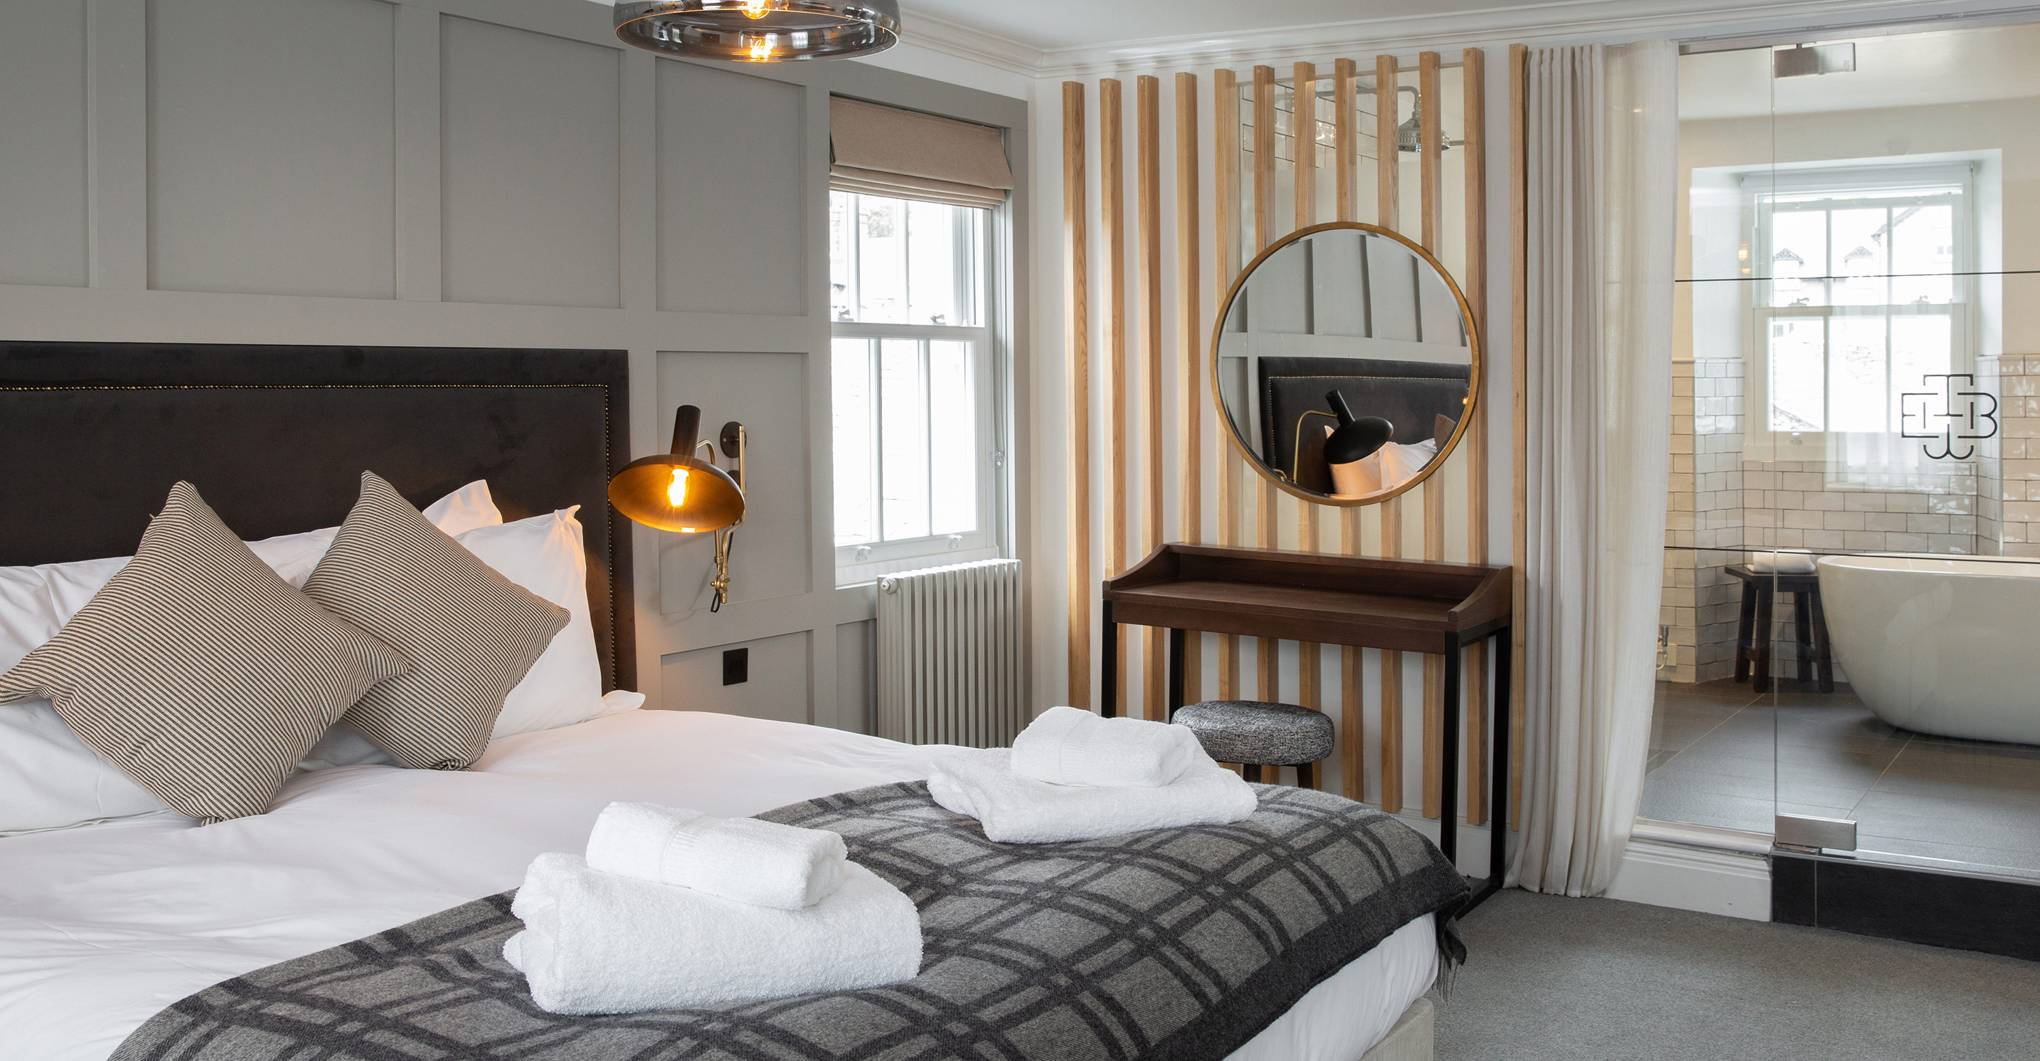 The Black Bull hotel review